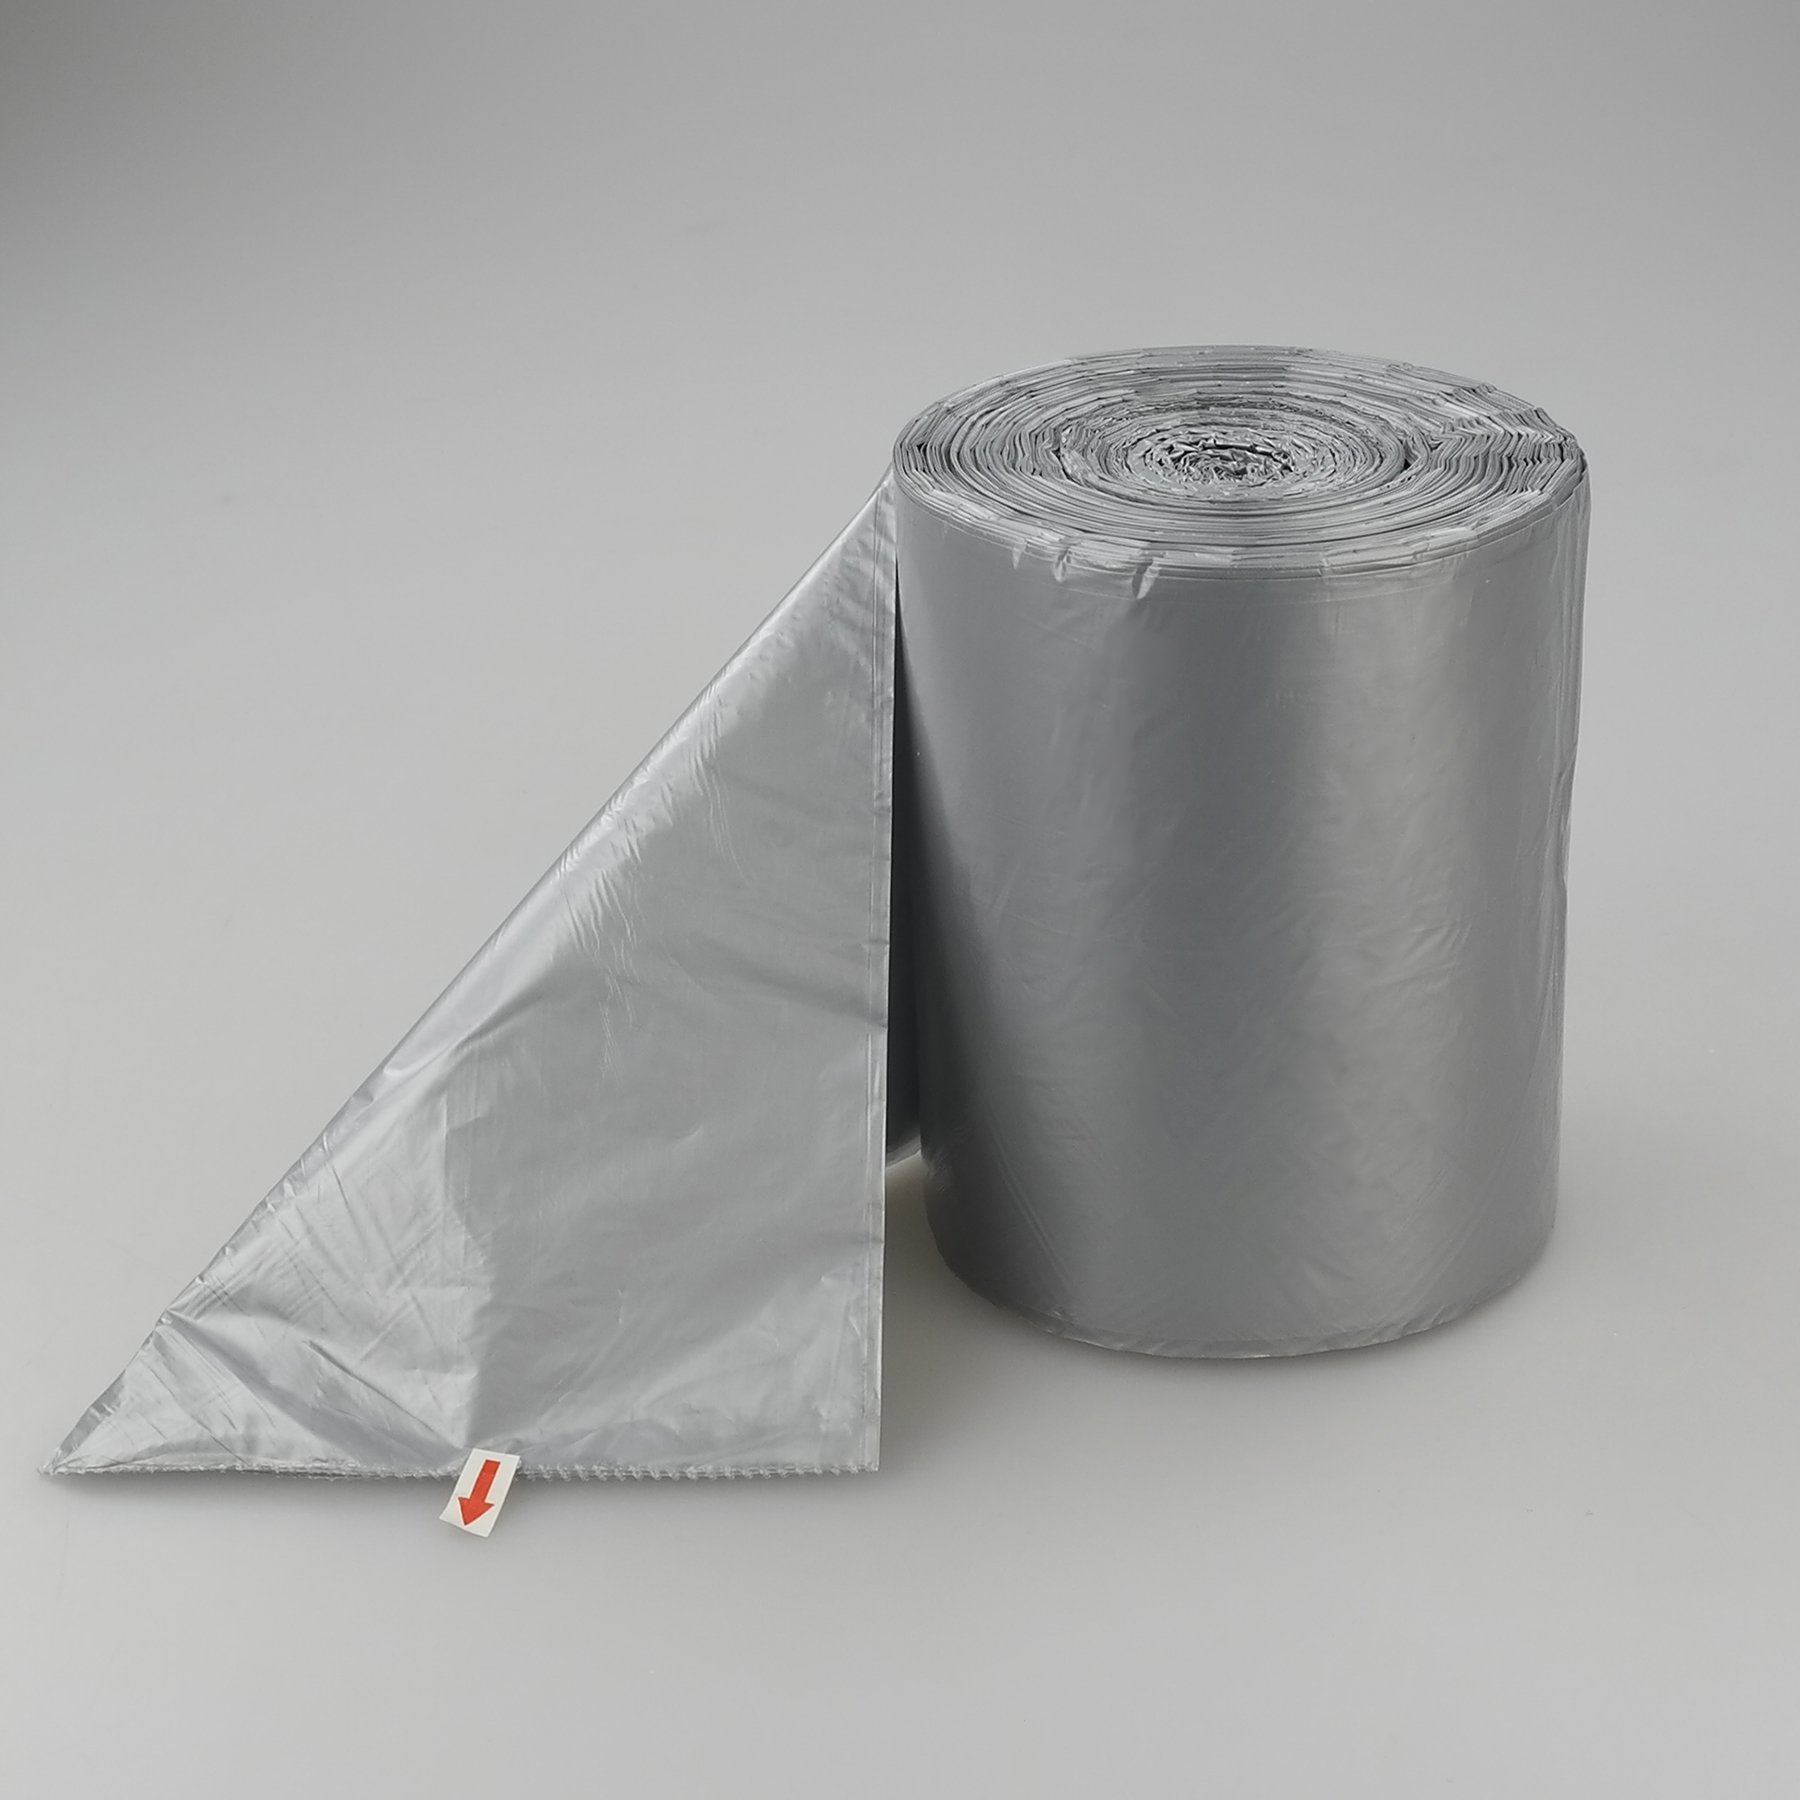 anbers 1 2 gallon small trash can liners grey 140 counts 602731324051 ebay. Black Bedroom Furniture Sets. Home Design Ideas